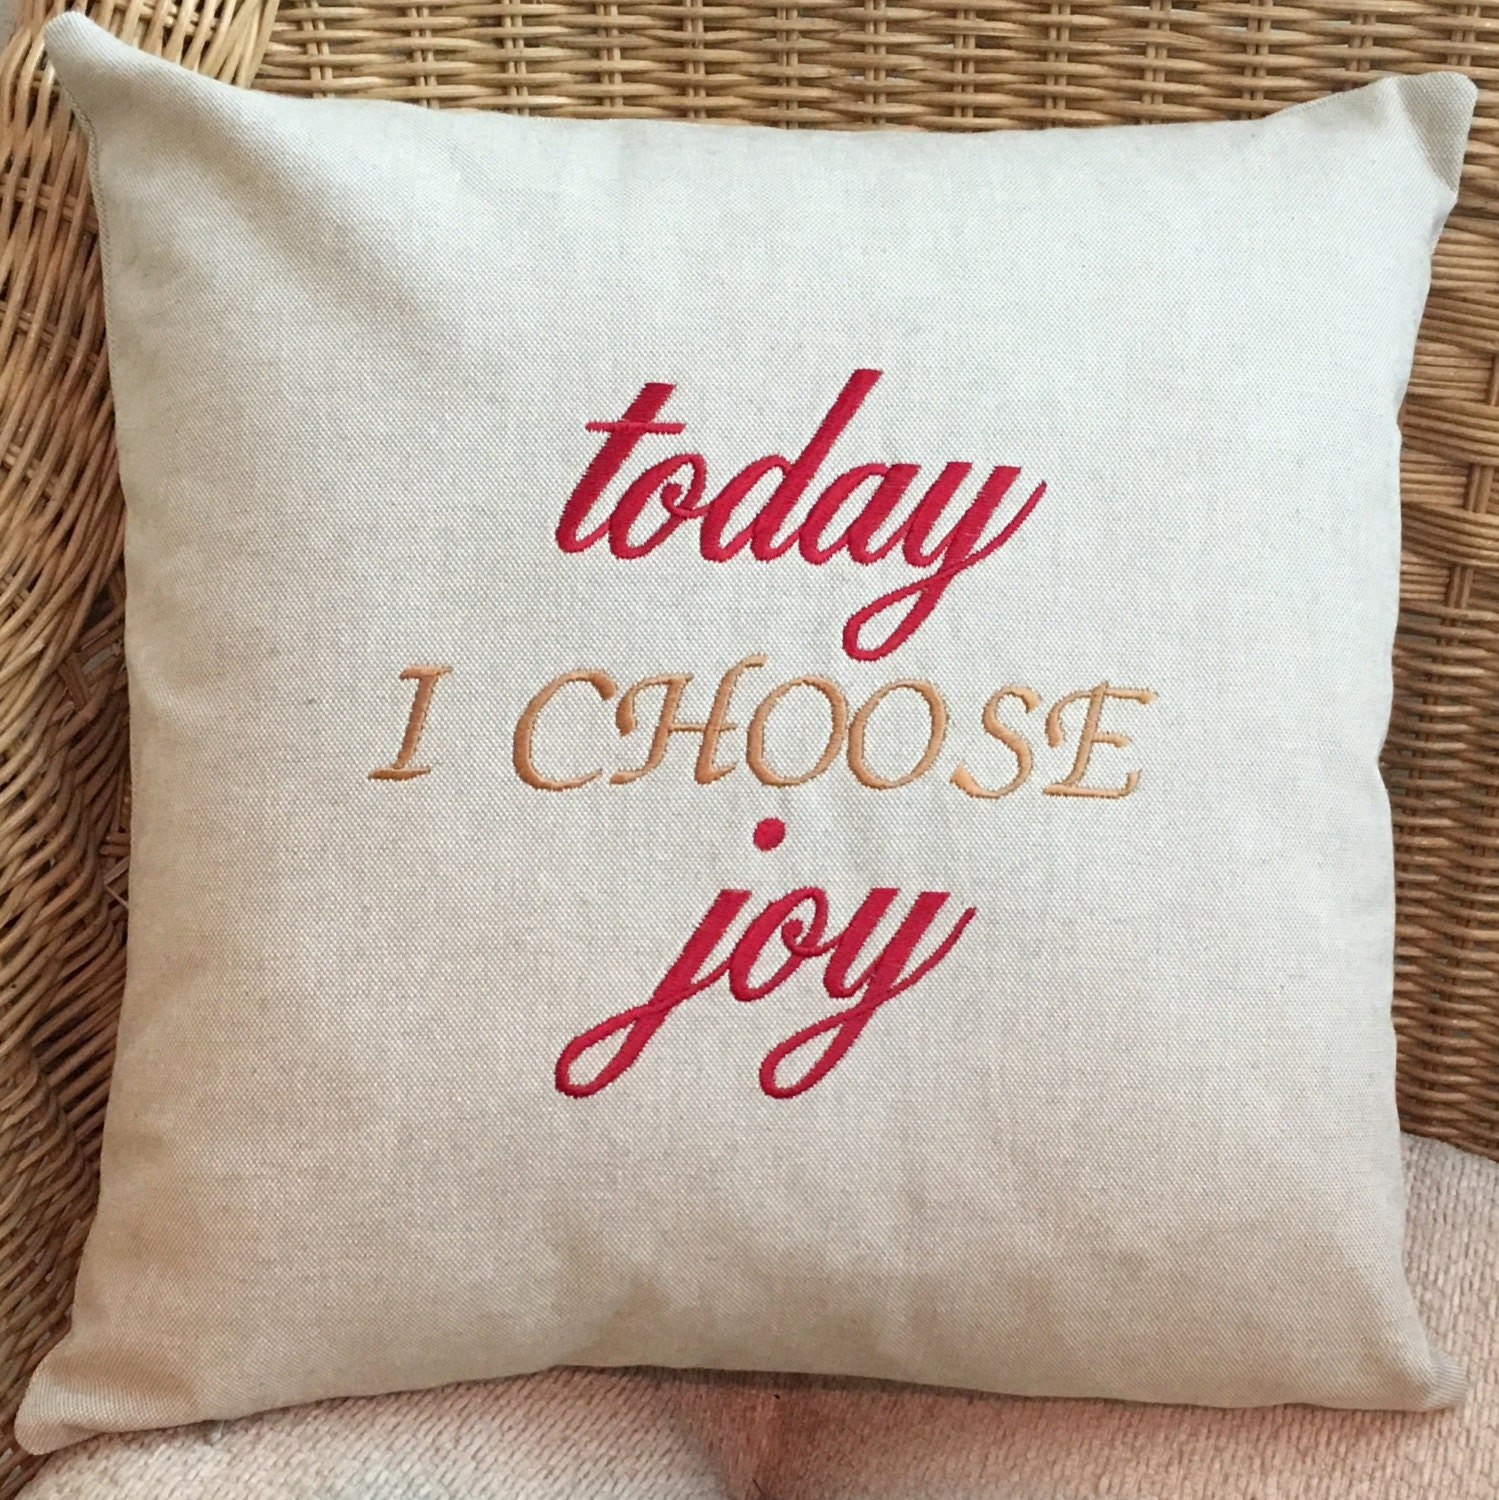 Decorative Throw Pillows With Words : Pillow Embroidered Pillow Decorative Pillow Word Pillow